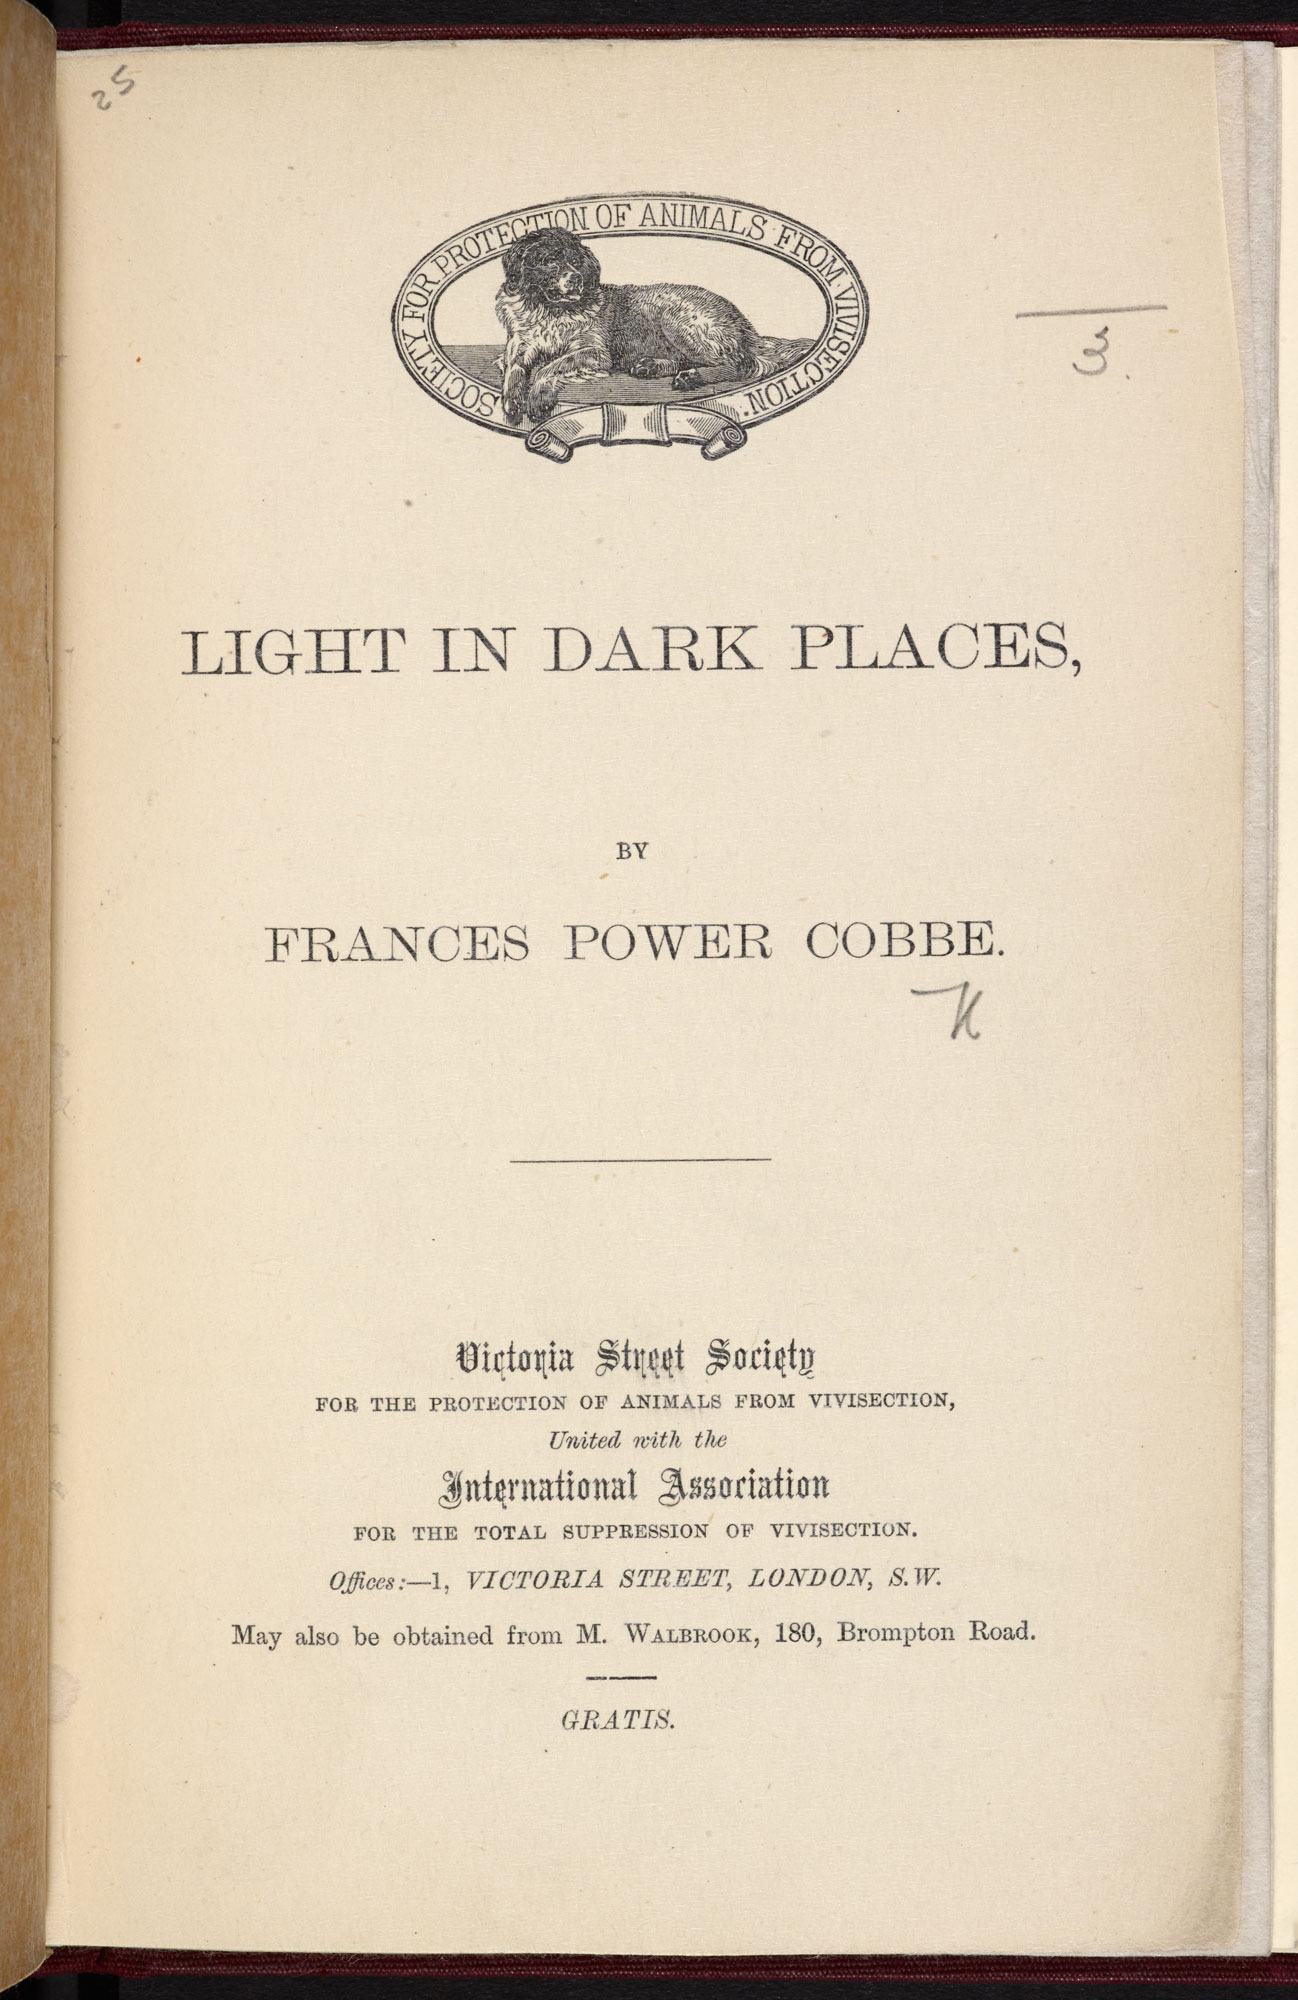 Anti-vivisection pamphlet, Light in Dark Places [page: title page]